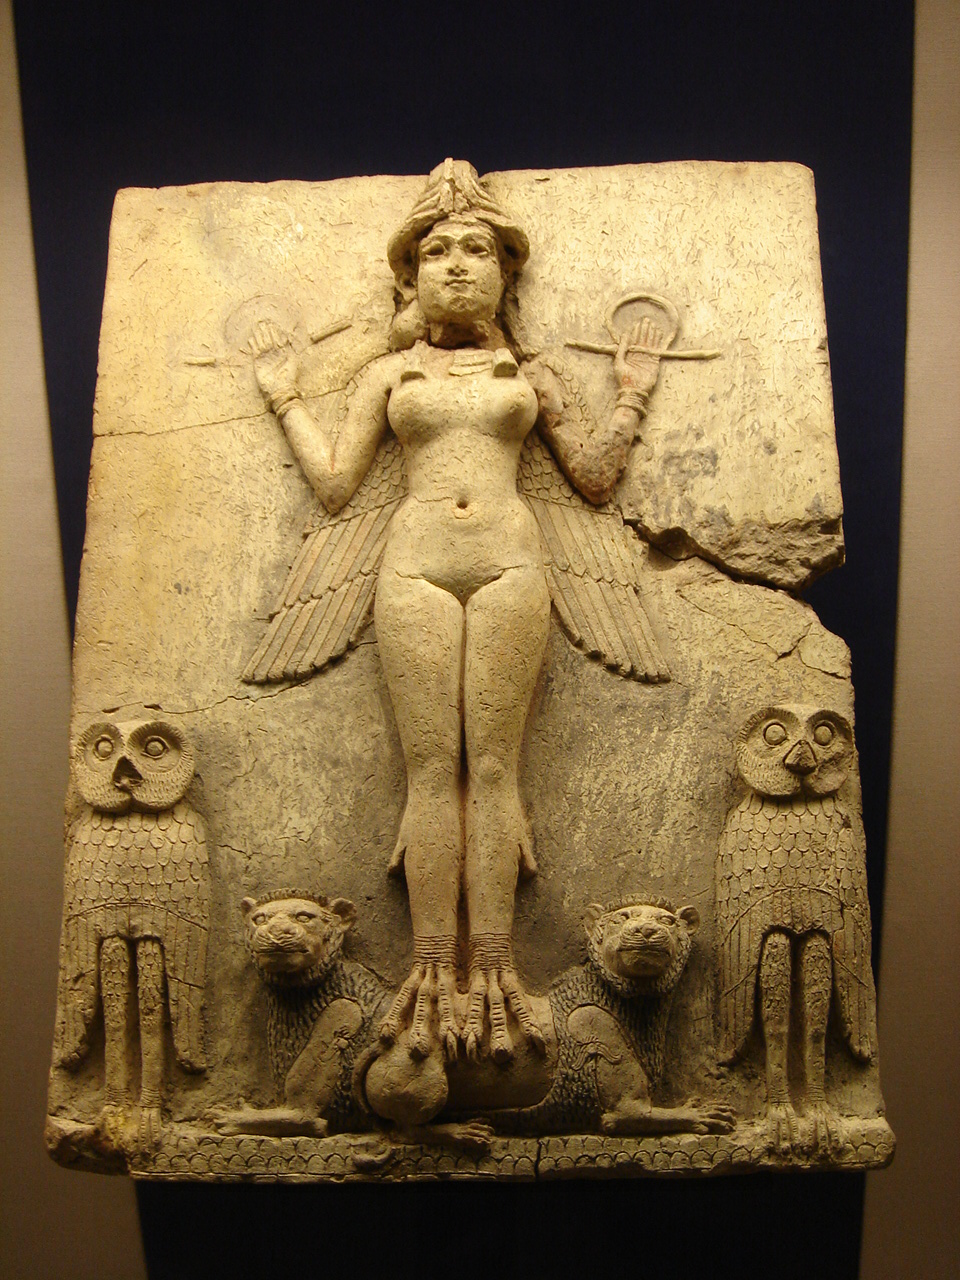 The Queen of the Night relief The figure could be an aspect of the goddess Ishtar Babylonian goddess of sex and love